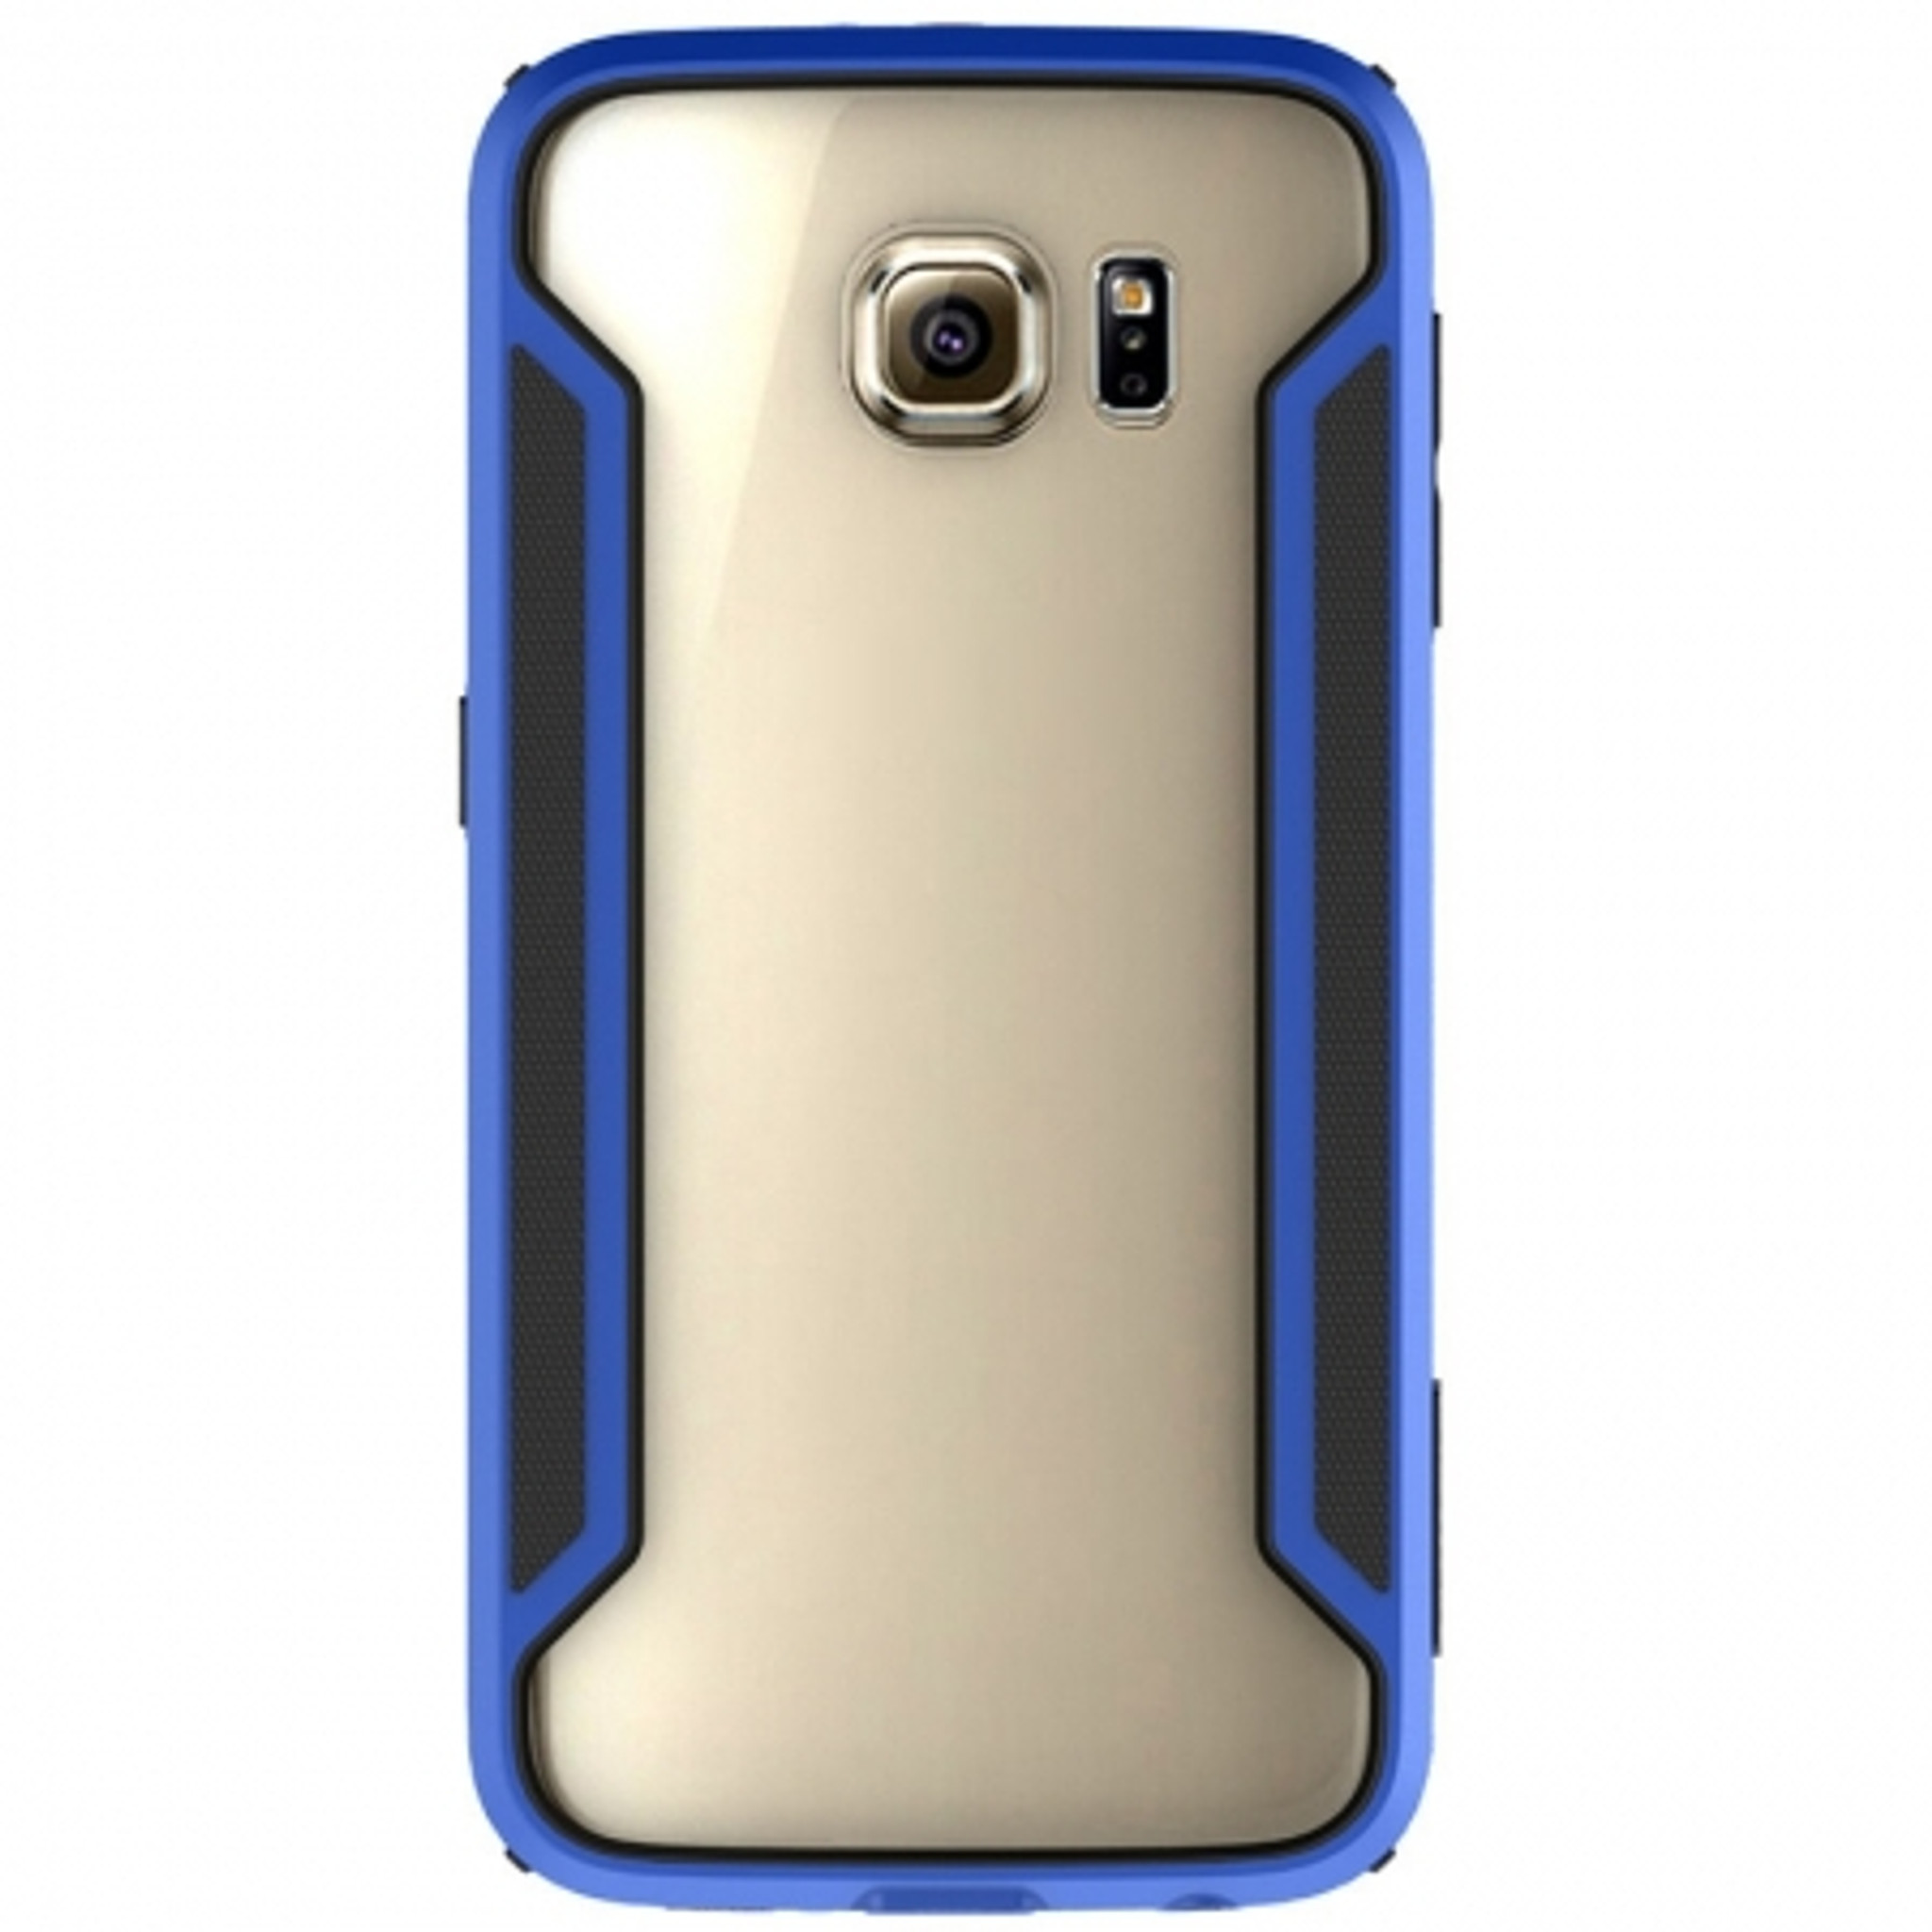 Nillkin Armor Border Case for Galaxy S6 - Blue